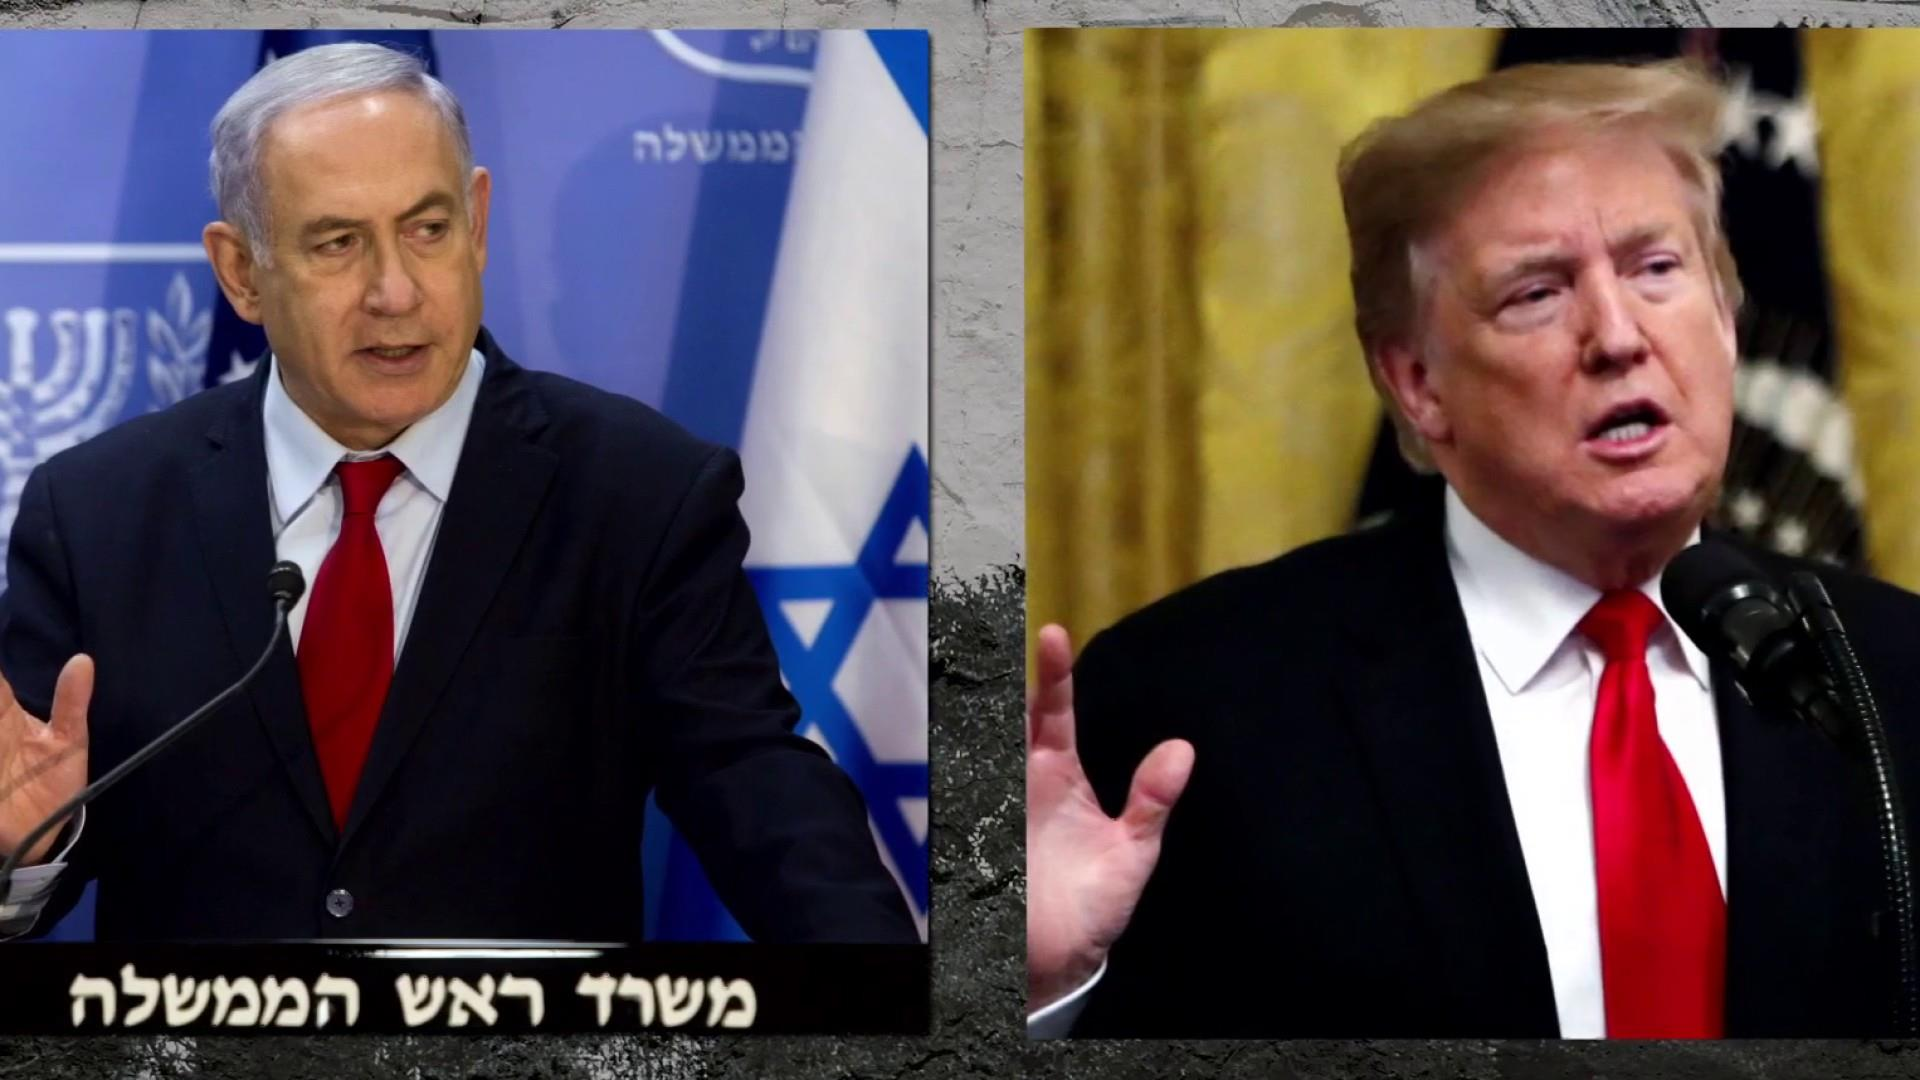 Netanyahu to make key campaign stop at the White House